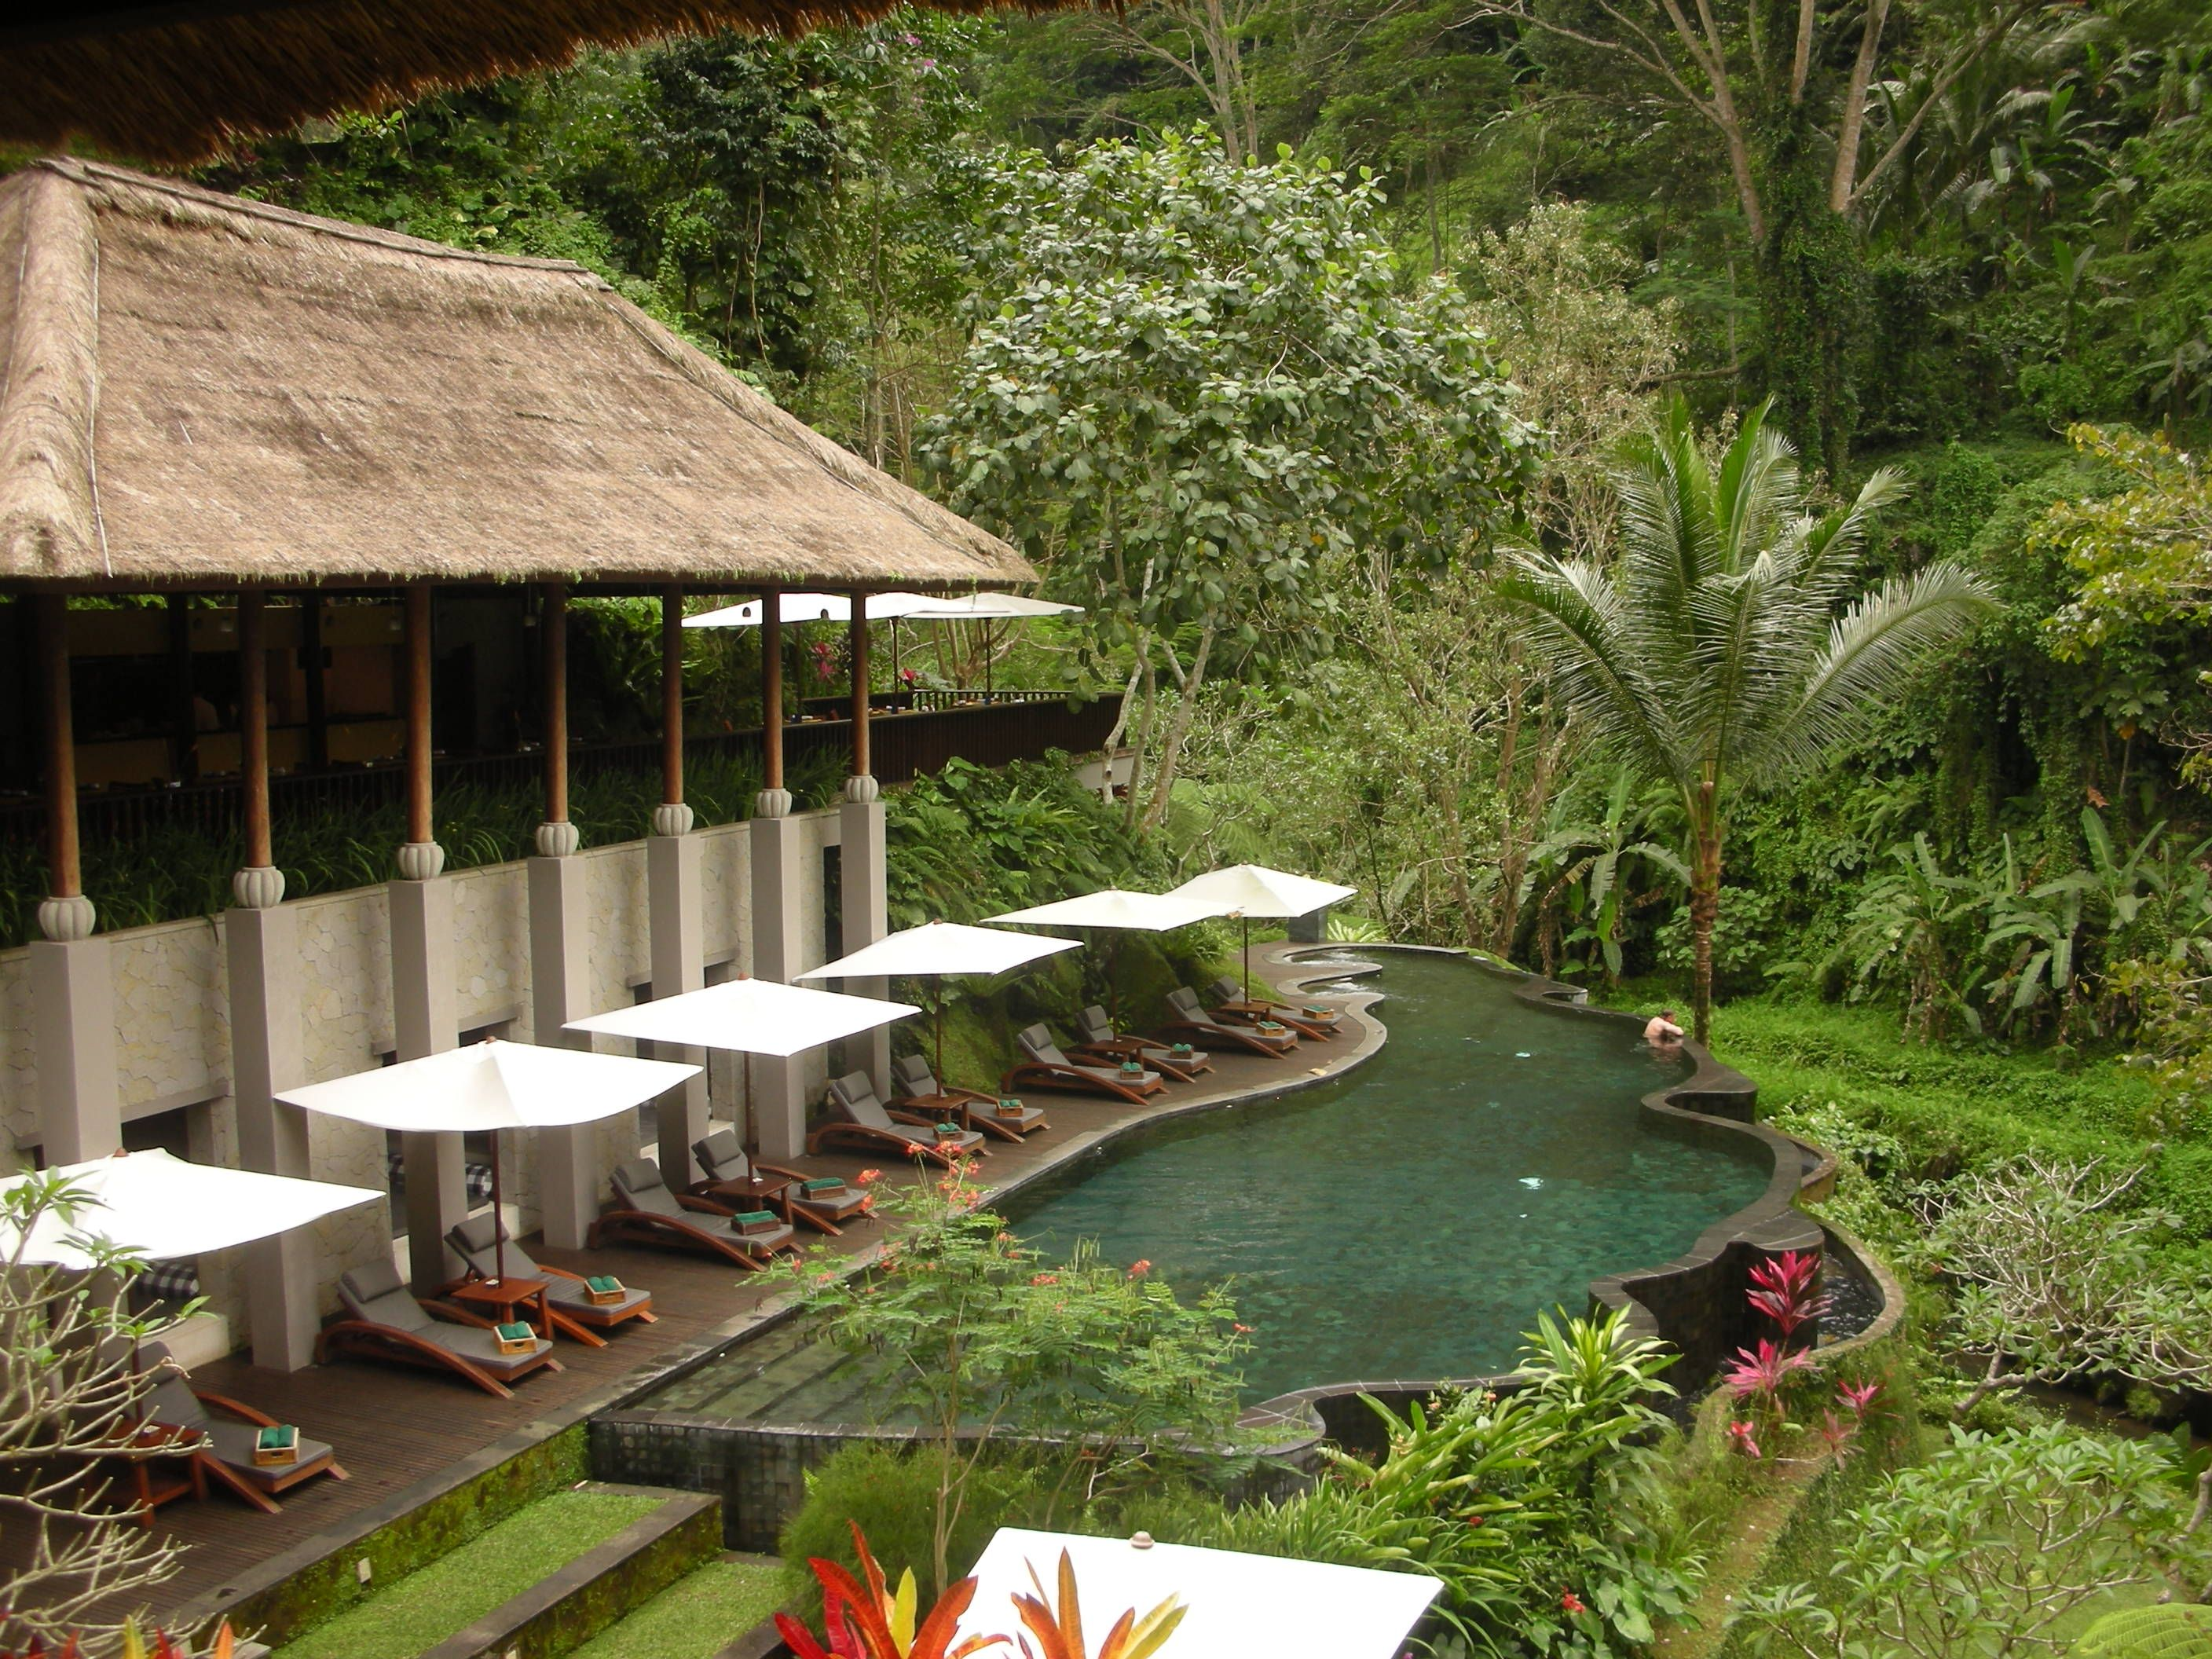 Maya Ubud Hotel Ubud Bali Indonesia Beautiful infinity pool